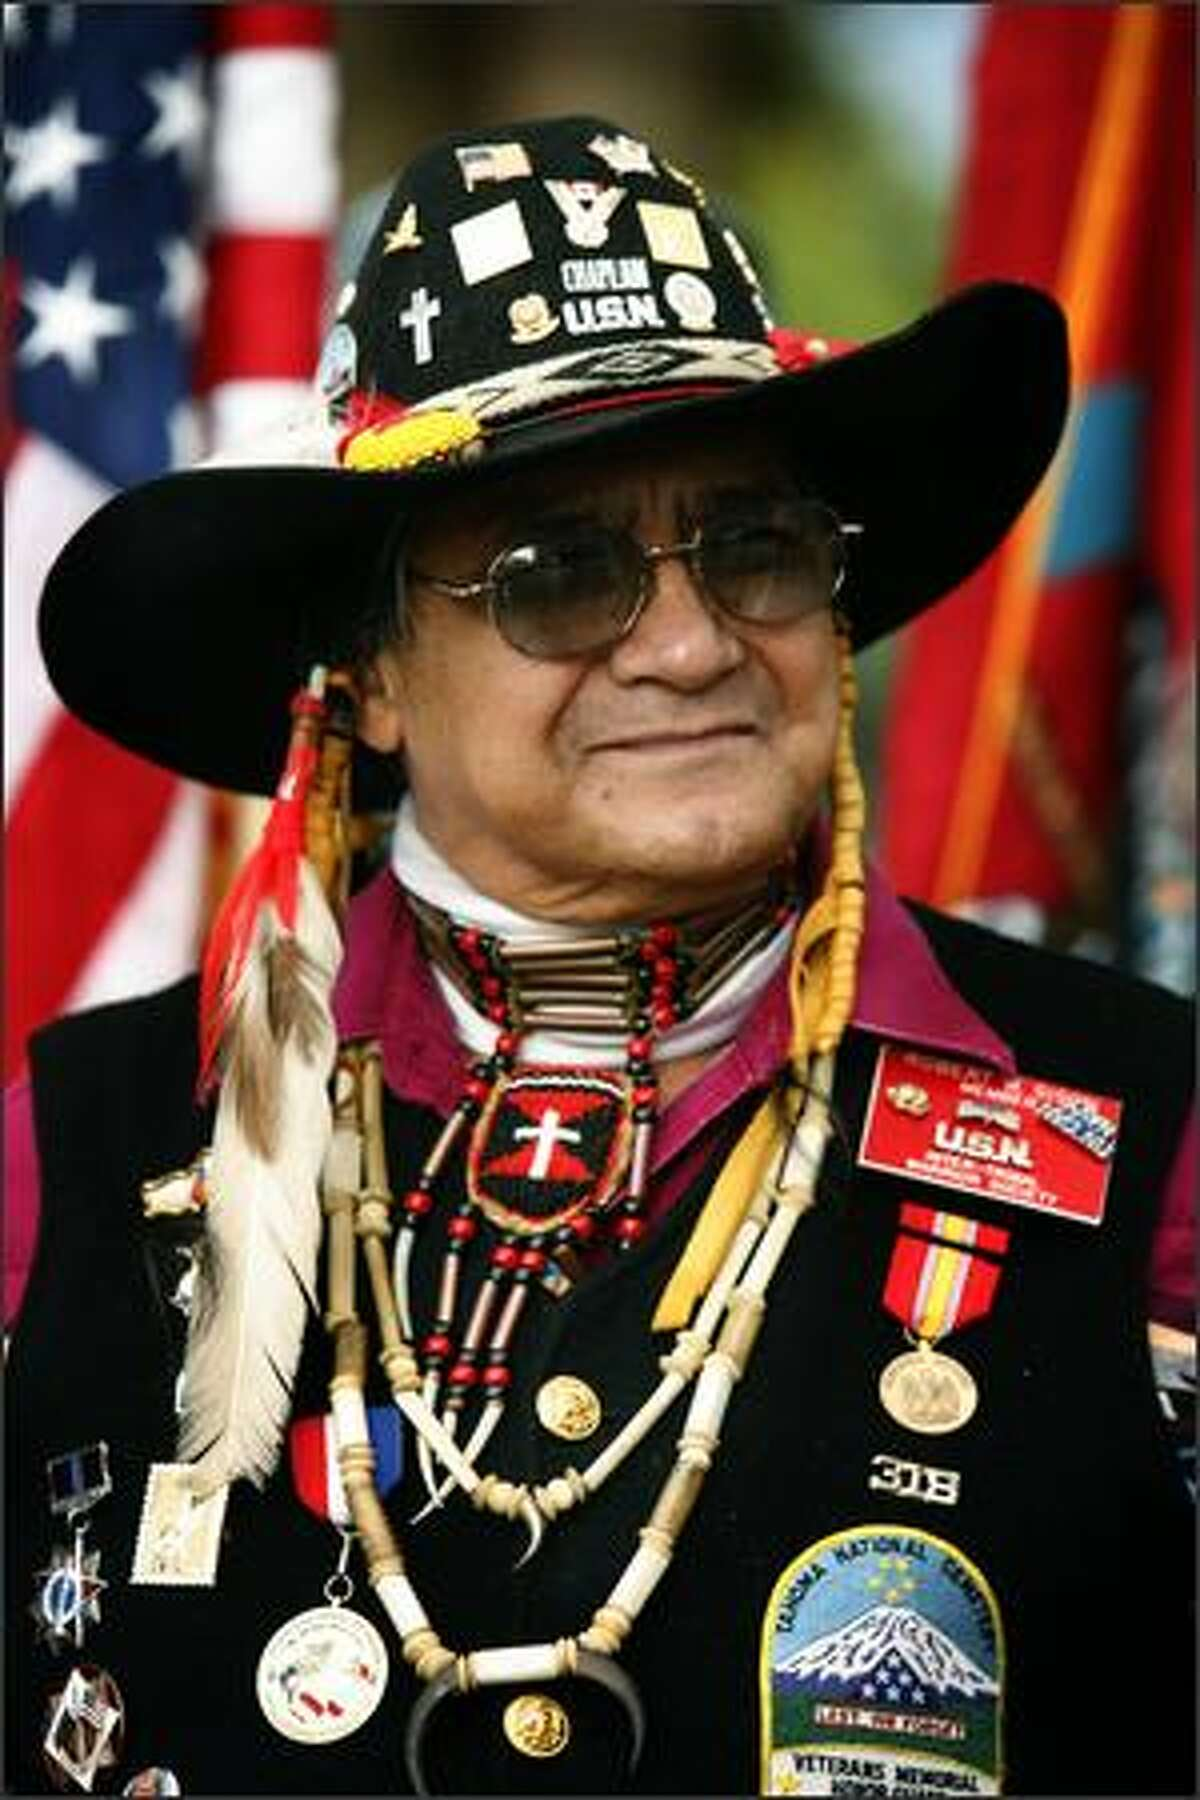 Robert Sison, 72, a Navy vet who lives on the Nisqually reservation, is chaplain for the Inter-Tribal Warrior Society.